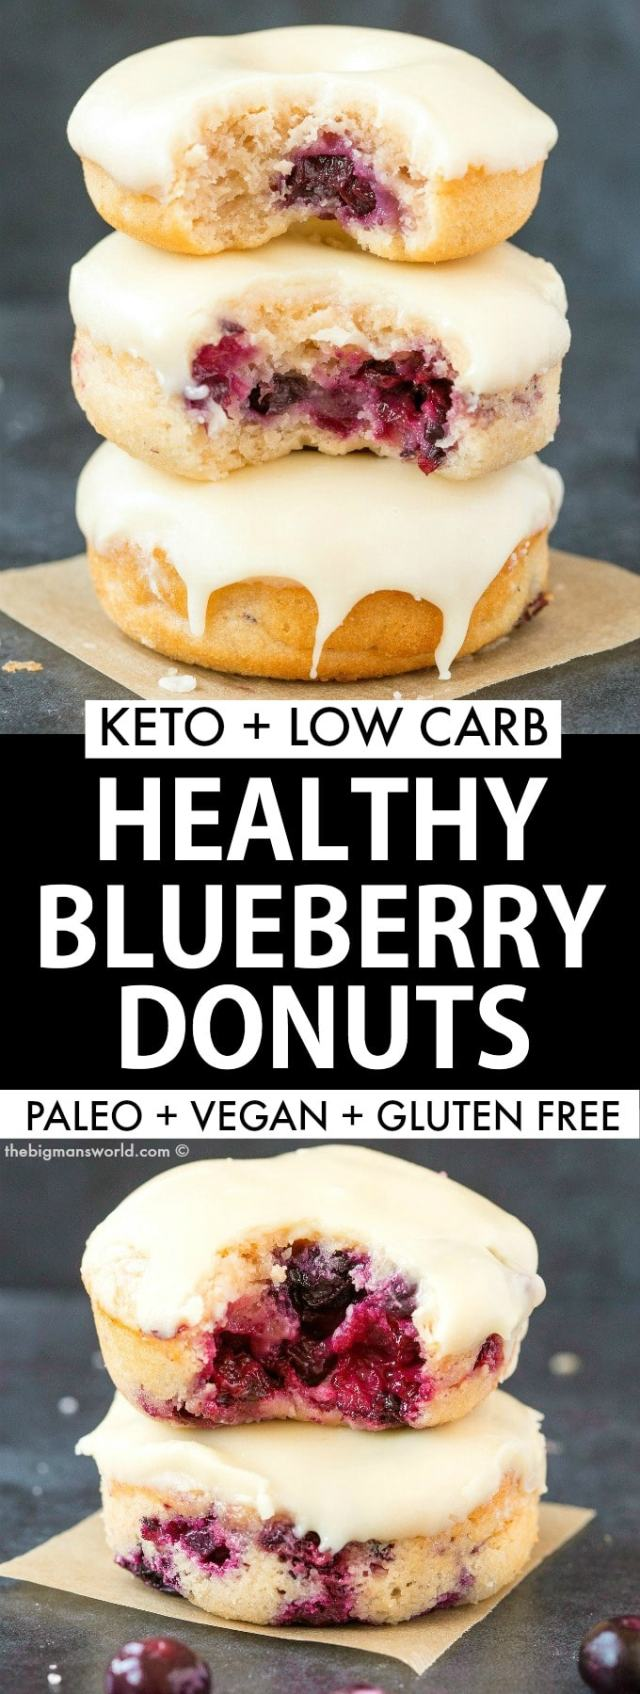 Easy baked blueberry donuts recipe made without yeast- paleo and vegan!